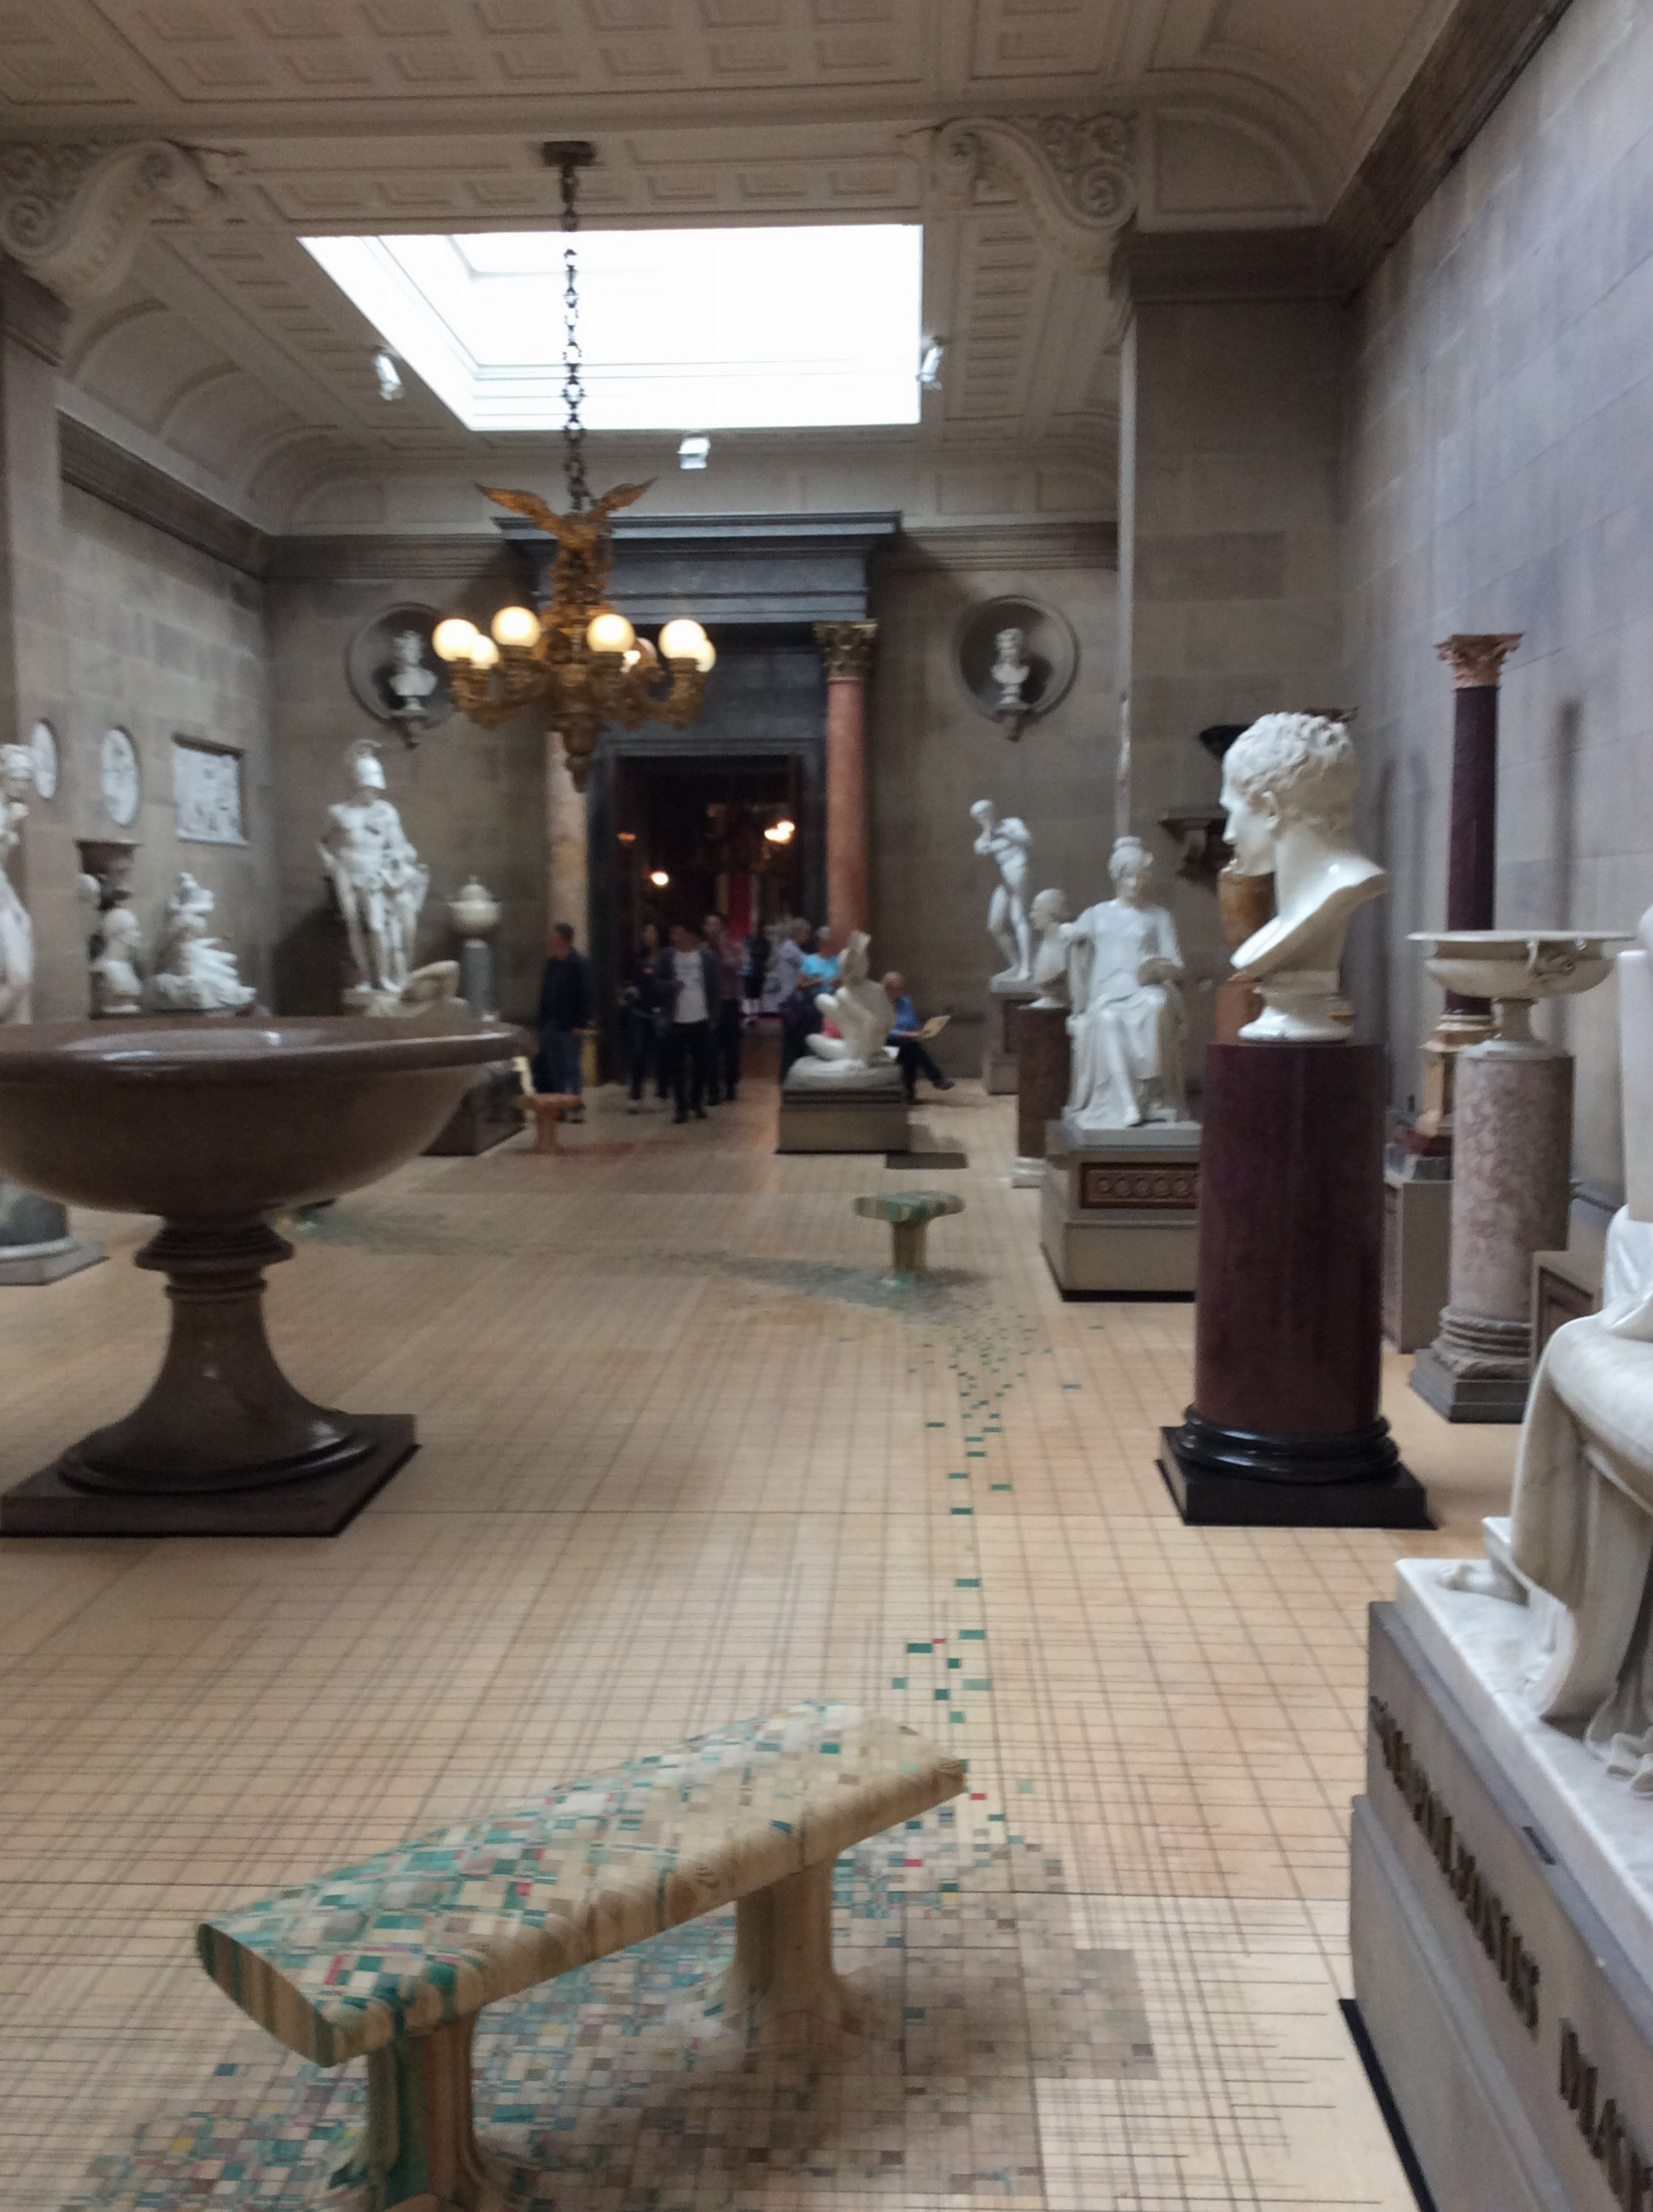 Its own sculpture gallery.